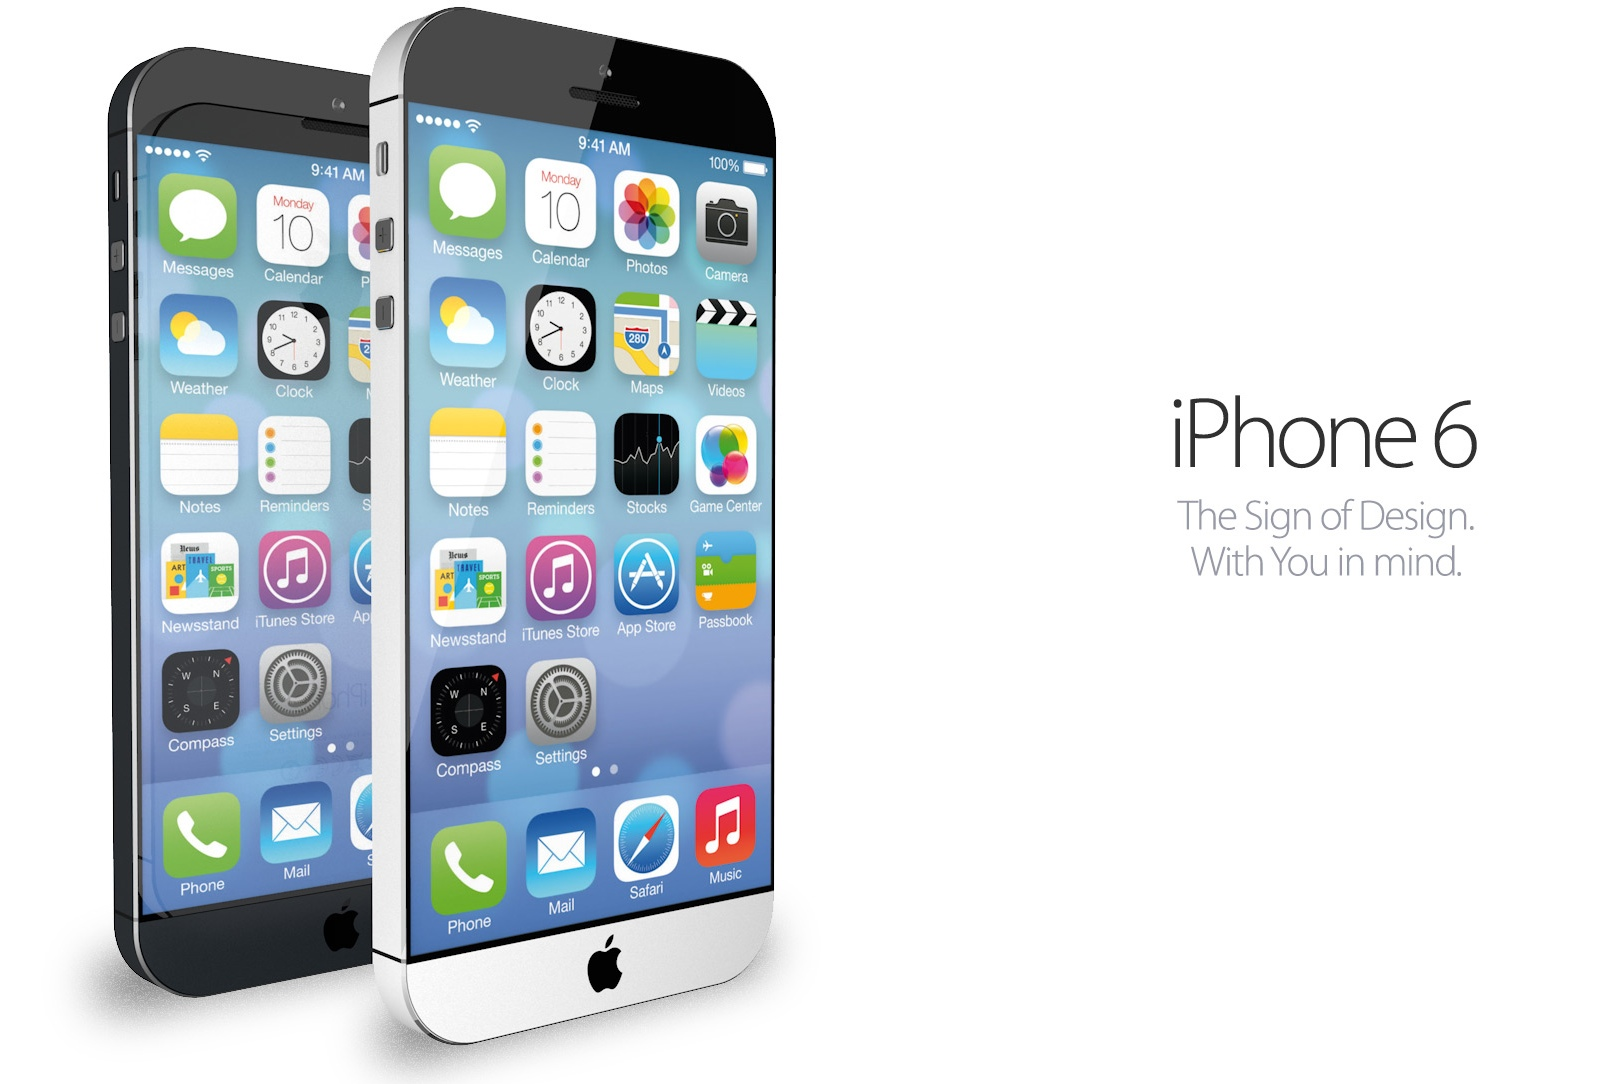 iphone 6 specifications iphone 6 more display more ram more storage moar 11422